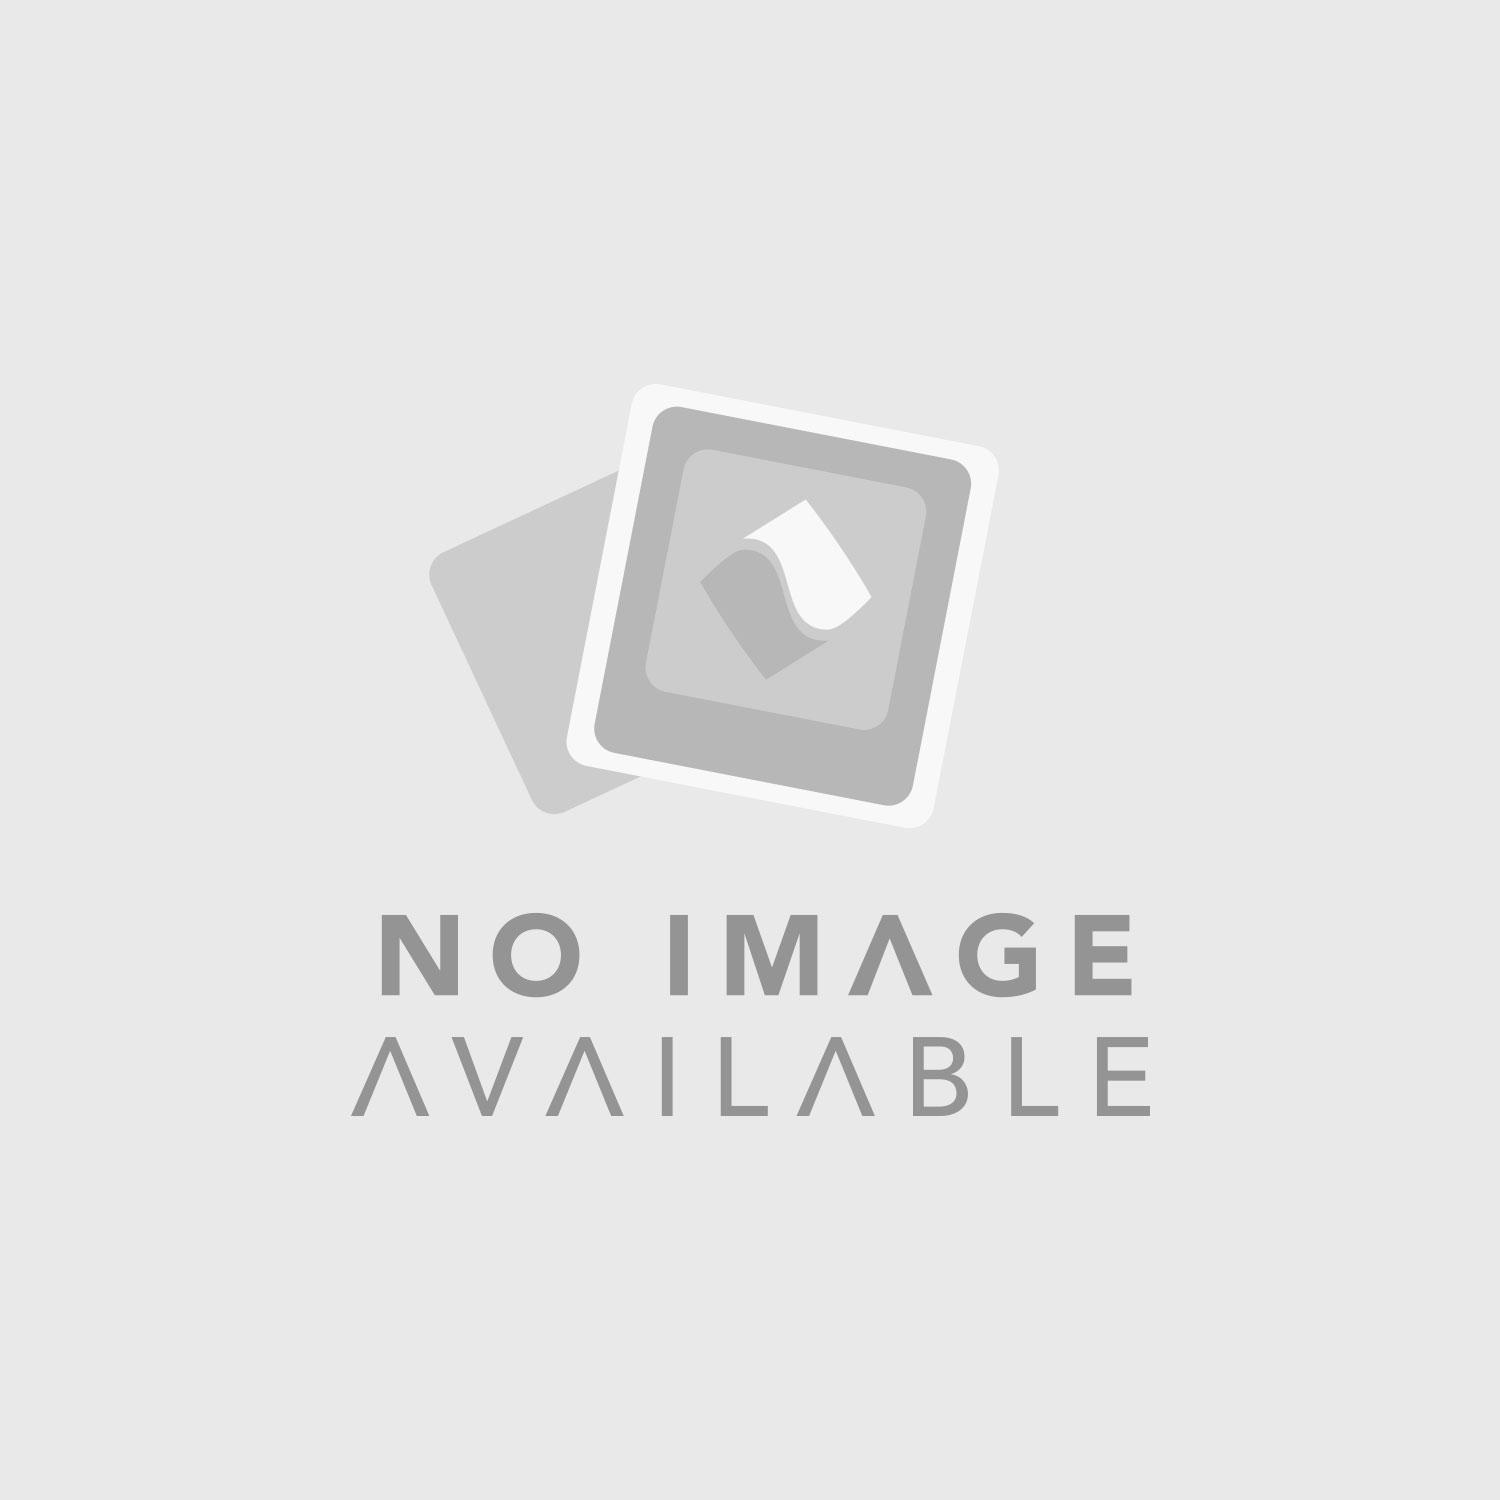 Audio-Technica AT-VMN95E Replacement Stylus for AT-VM95E Cartridge (Green)